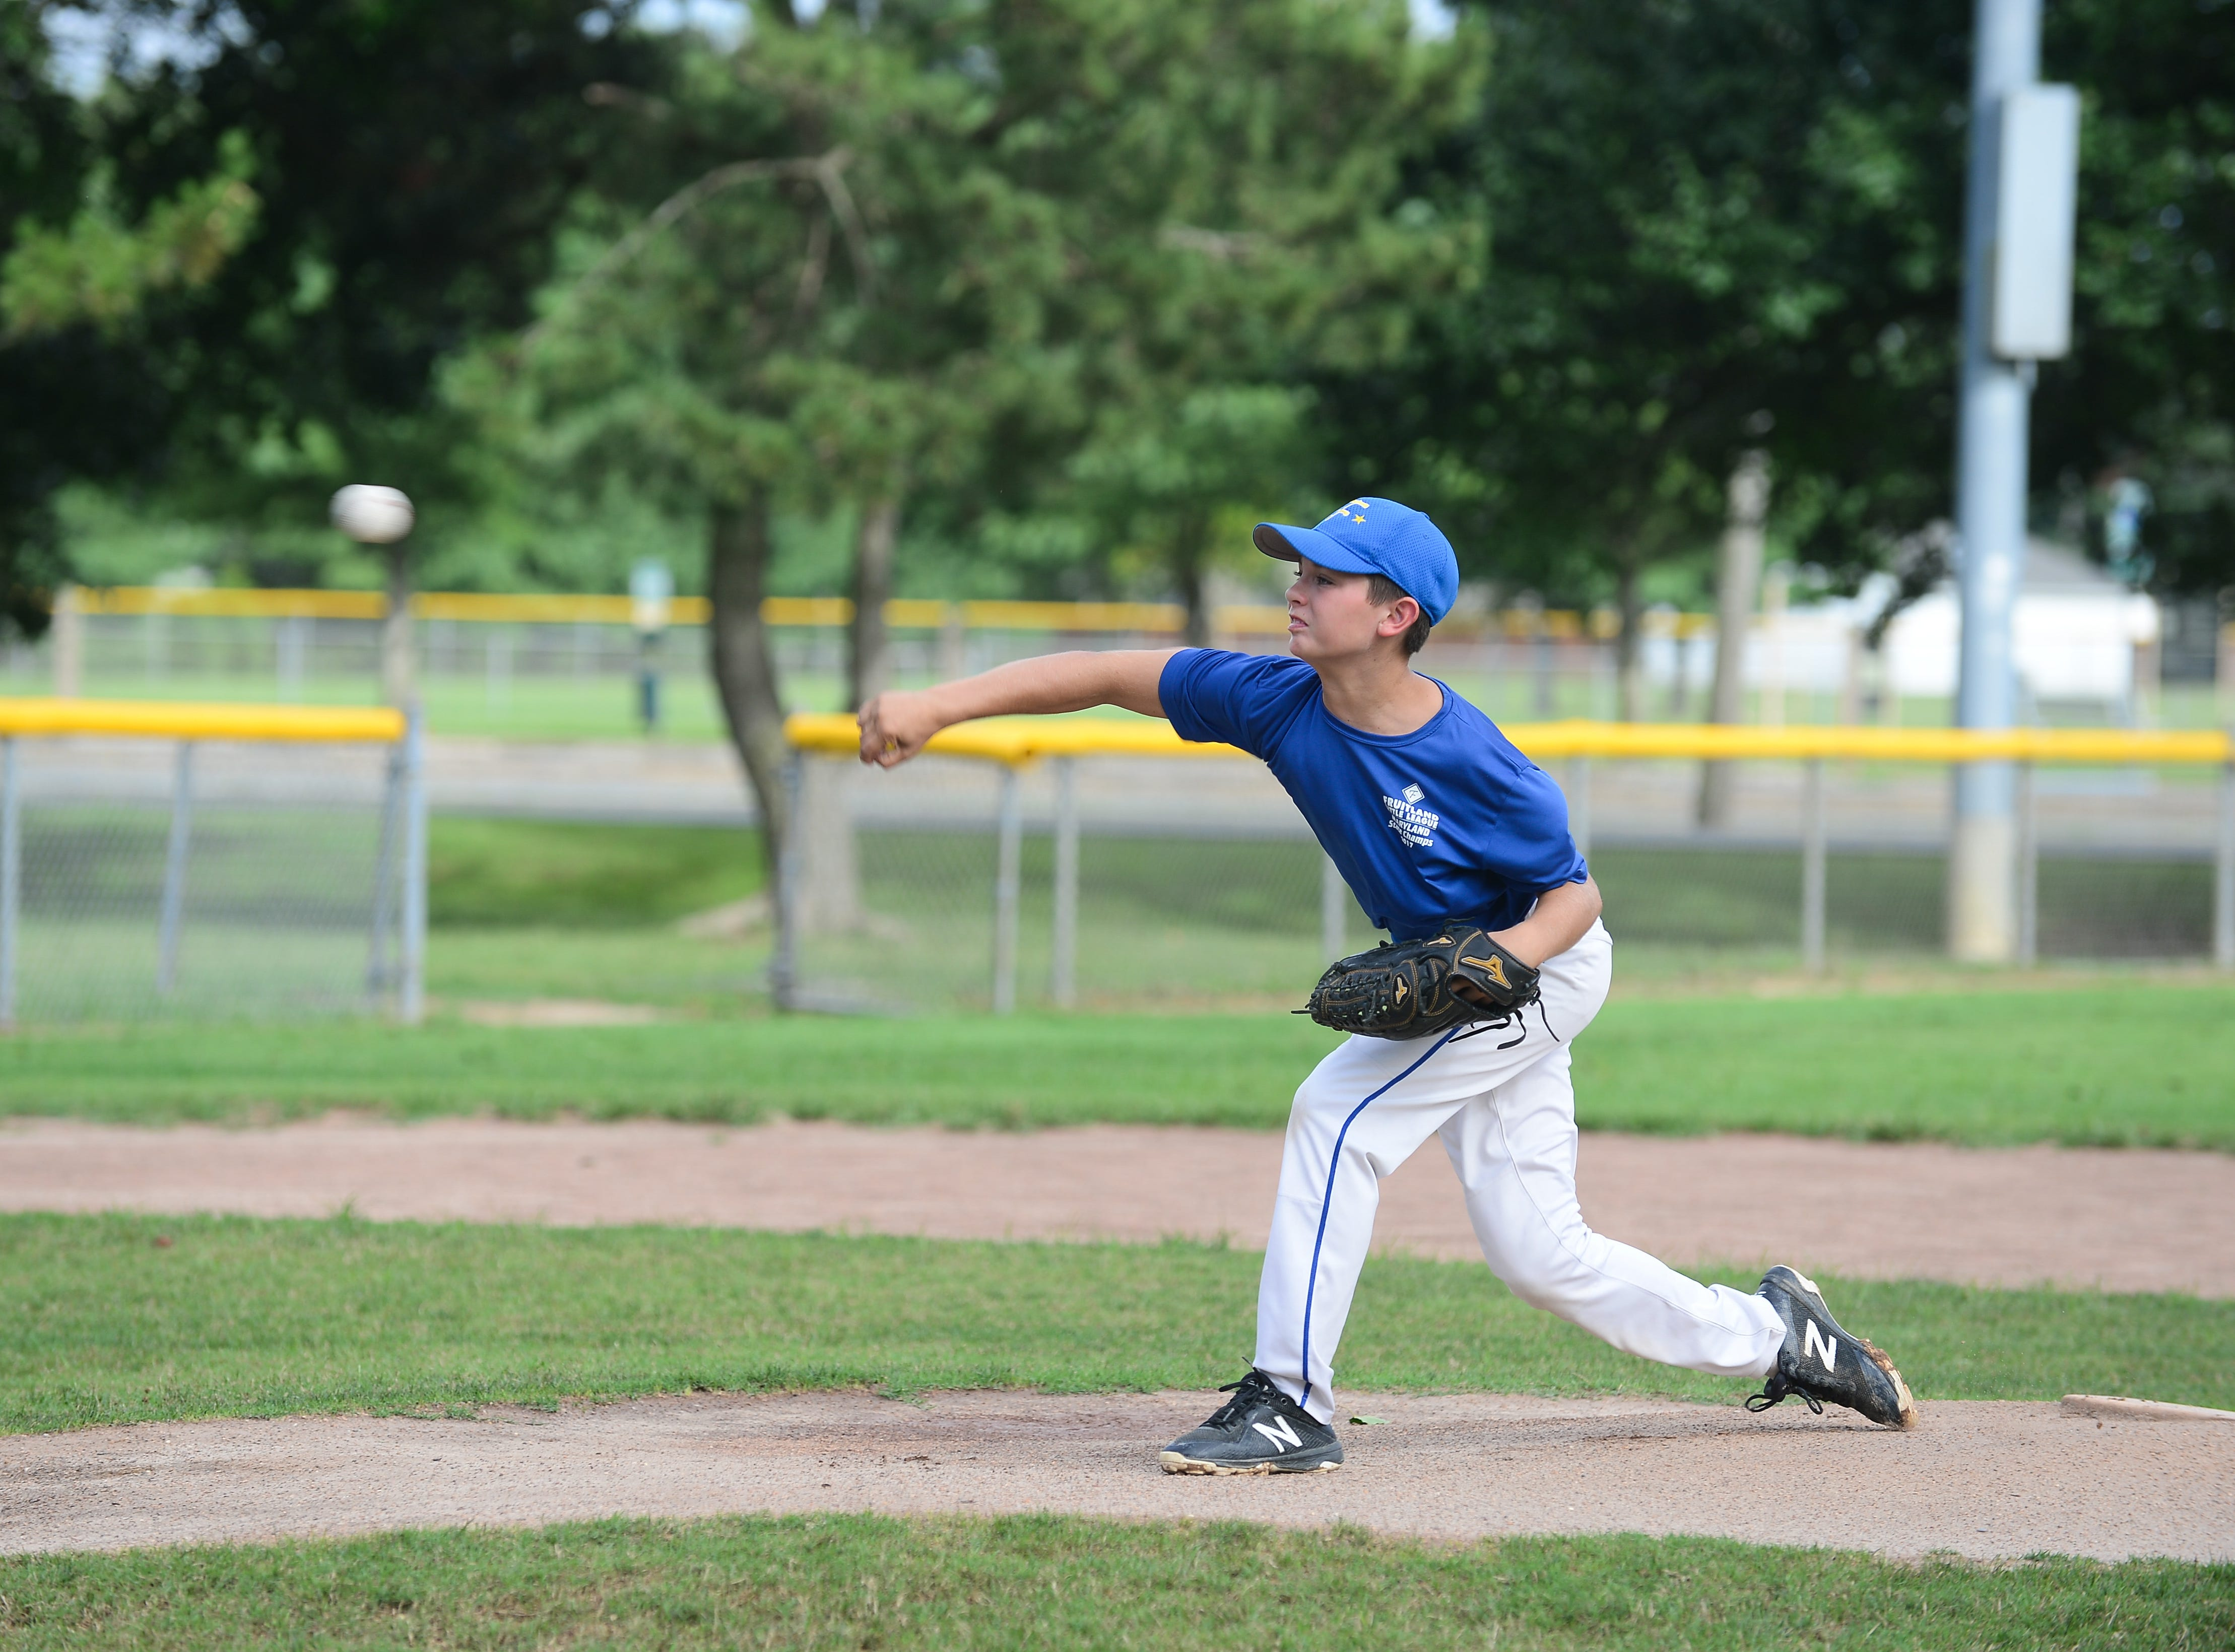 Trevin Whitelock,  a member of the Fruitland Little League 11U team, warms up on the mound on Tuesday, July 24, 2018.